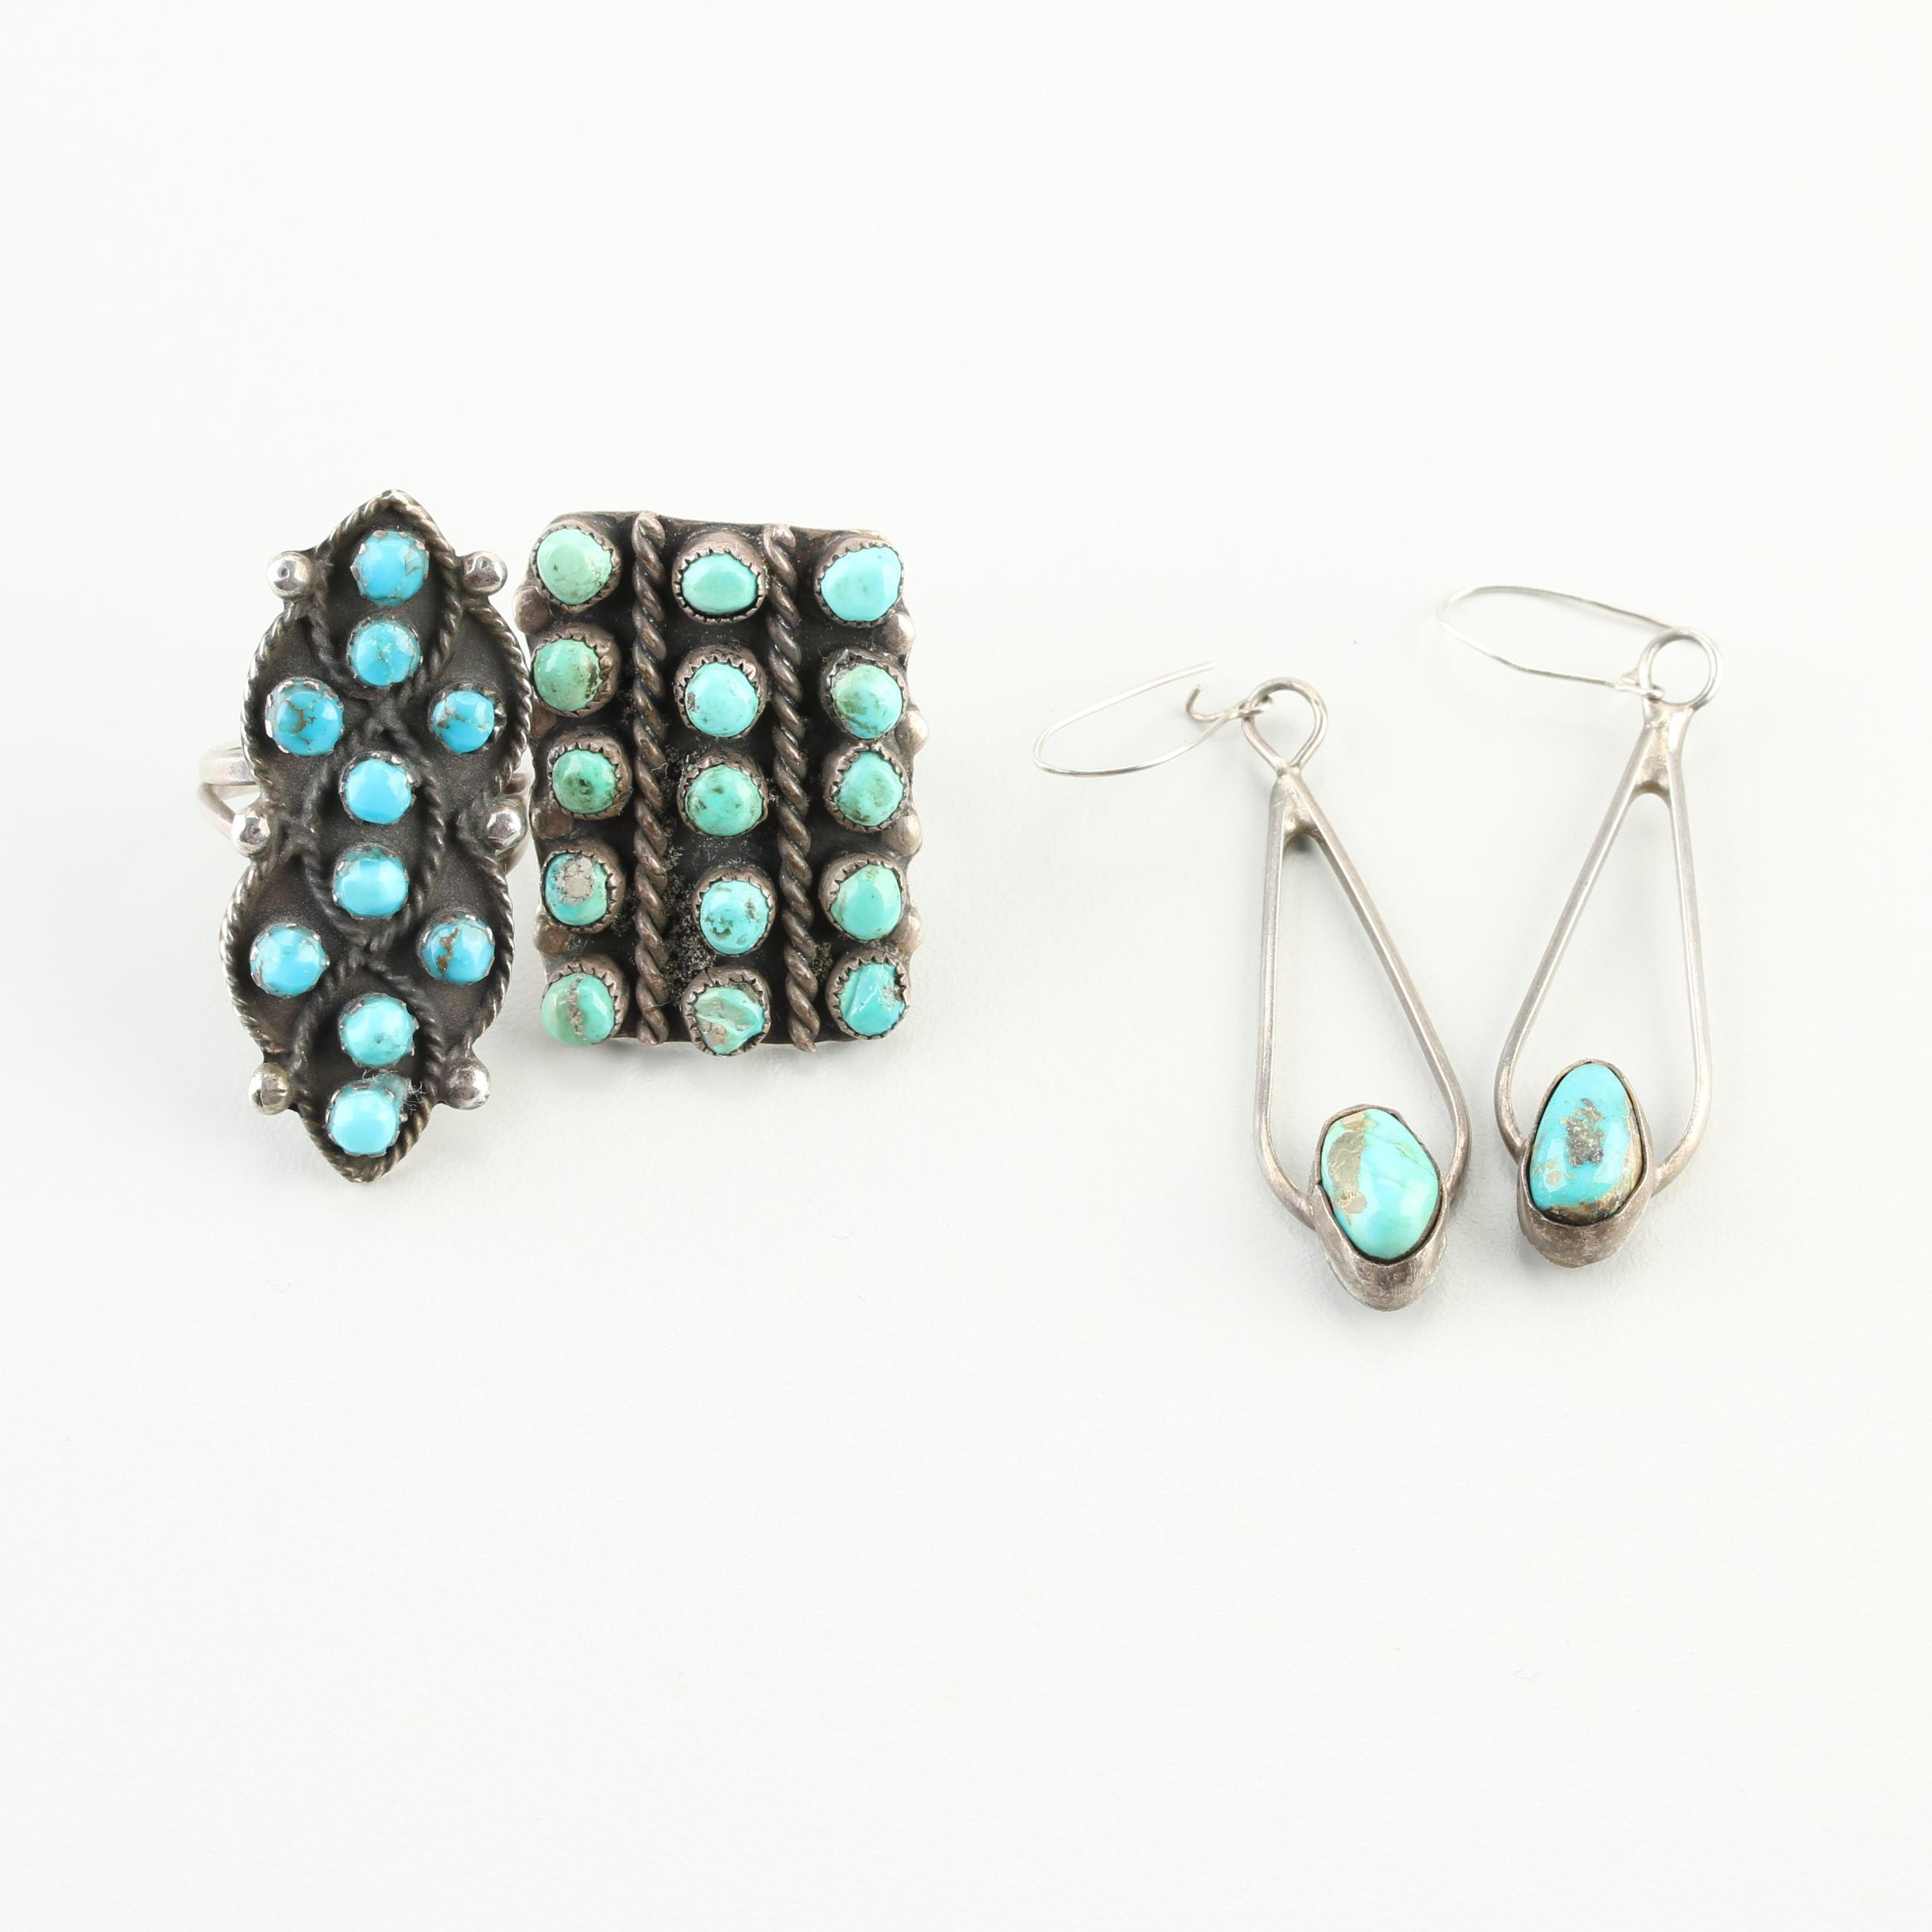 Southwestern Style Sterling Silver Rings and Earrings